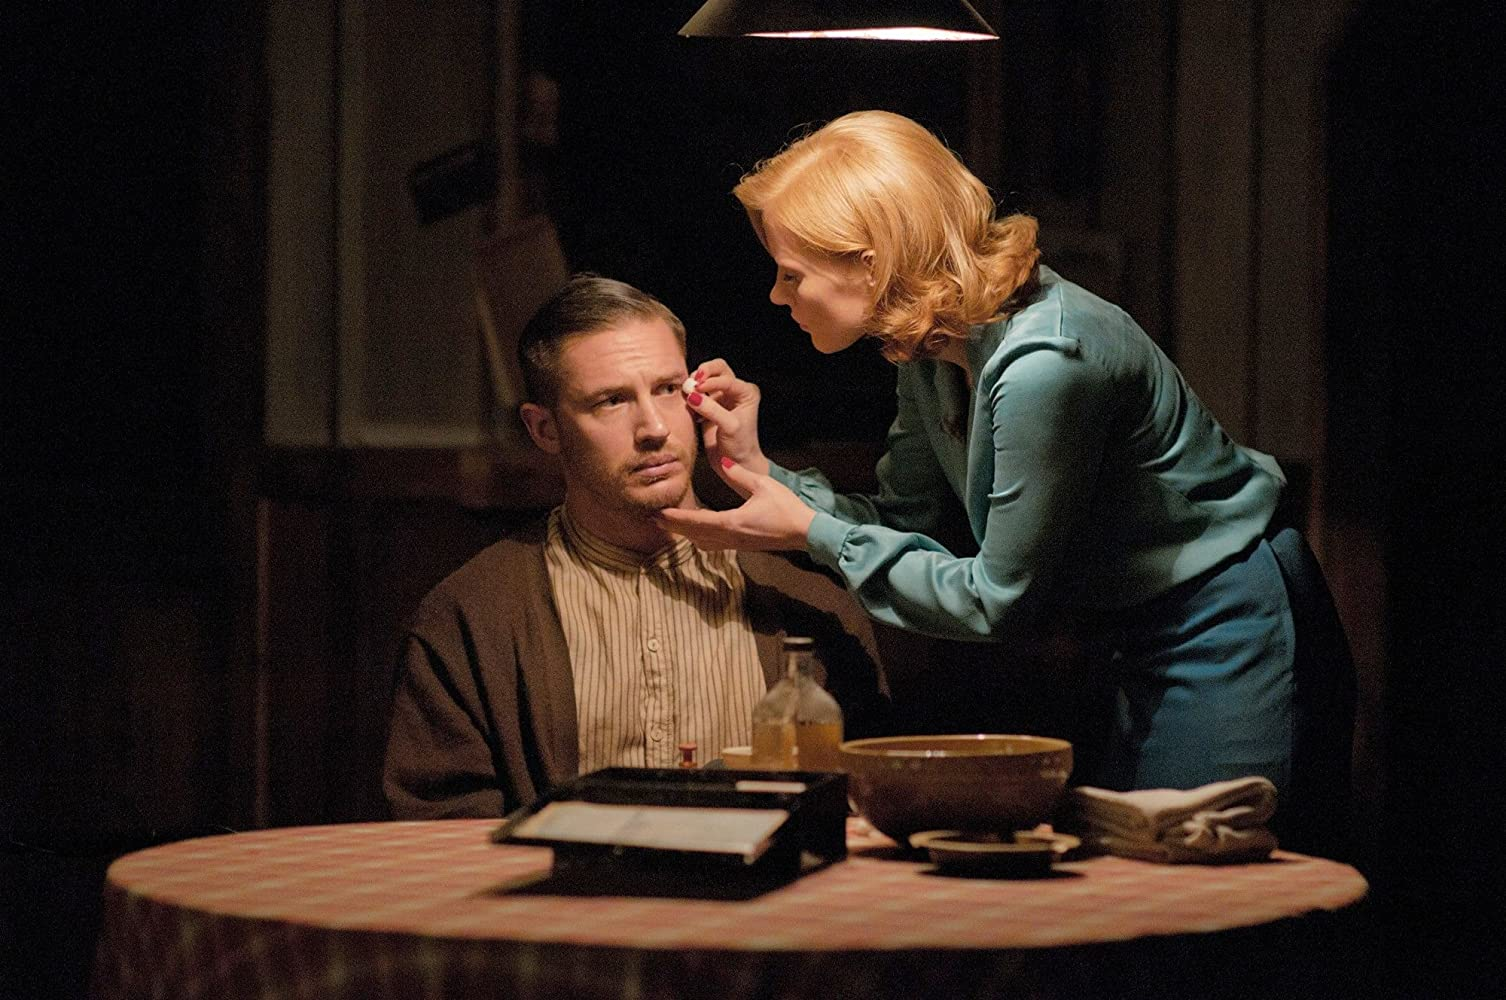 Tom Hardy and Jessica Chastain in Lawless (2012)